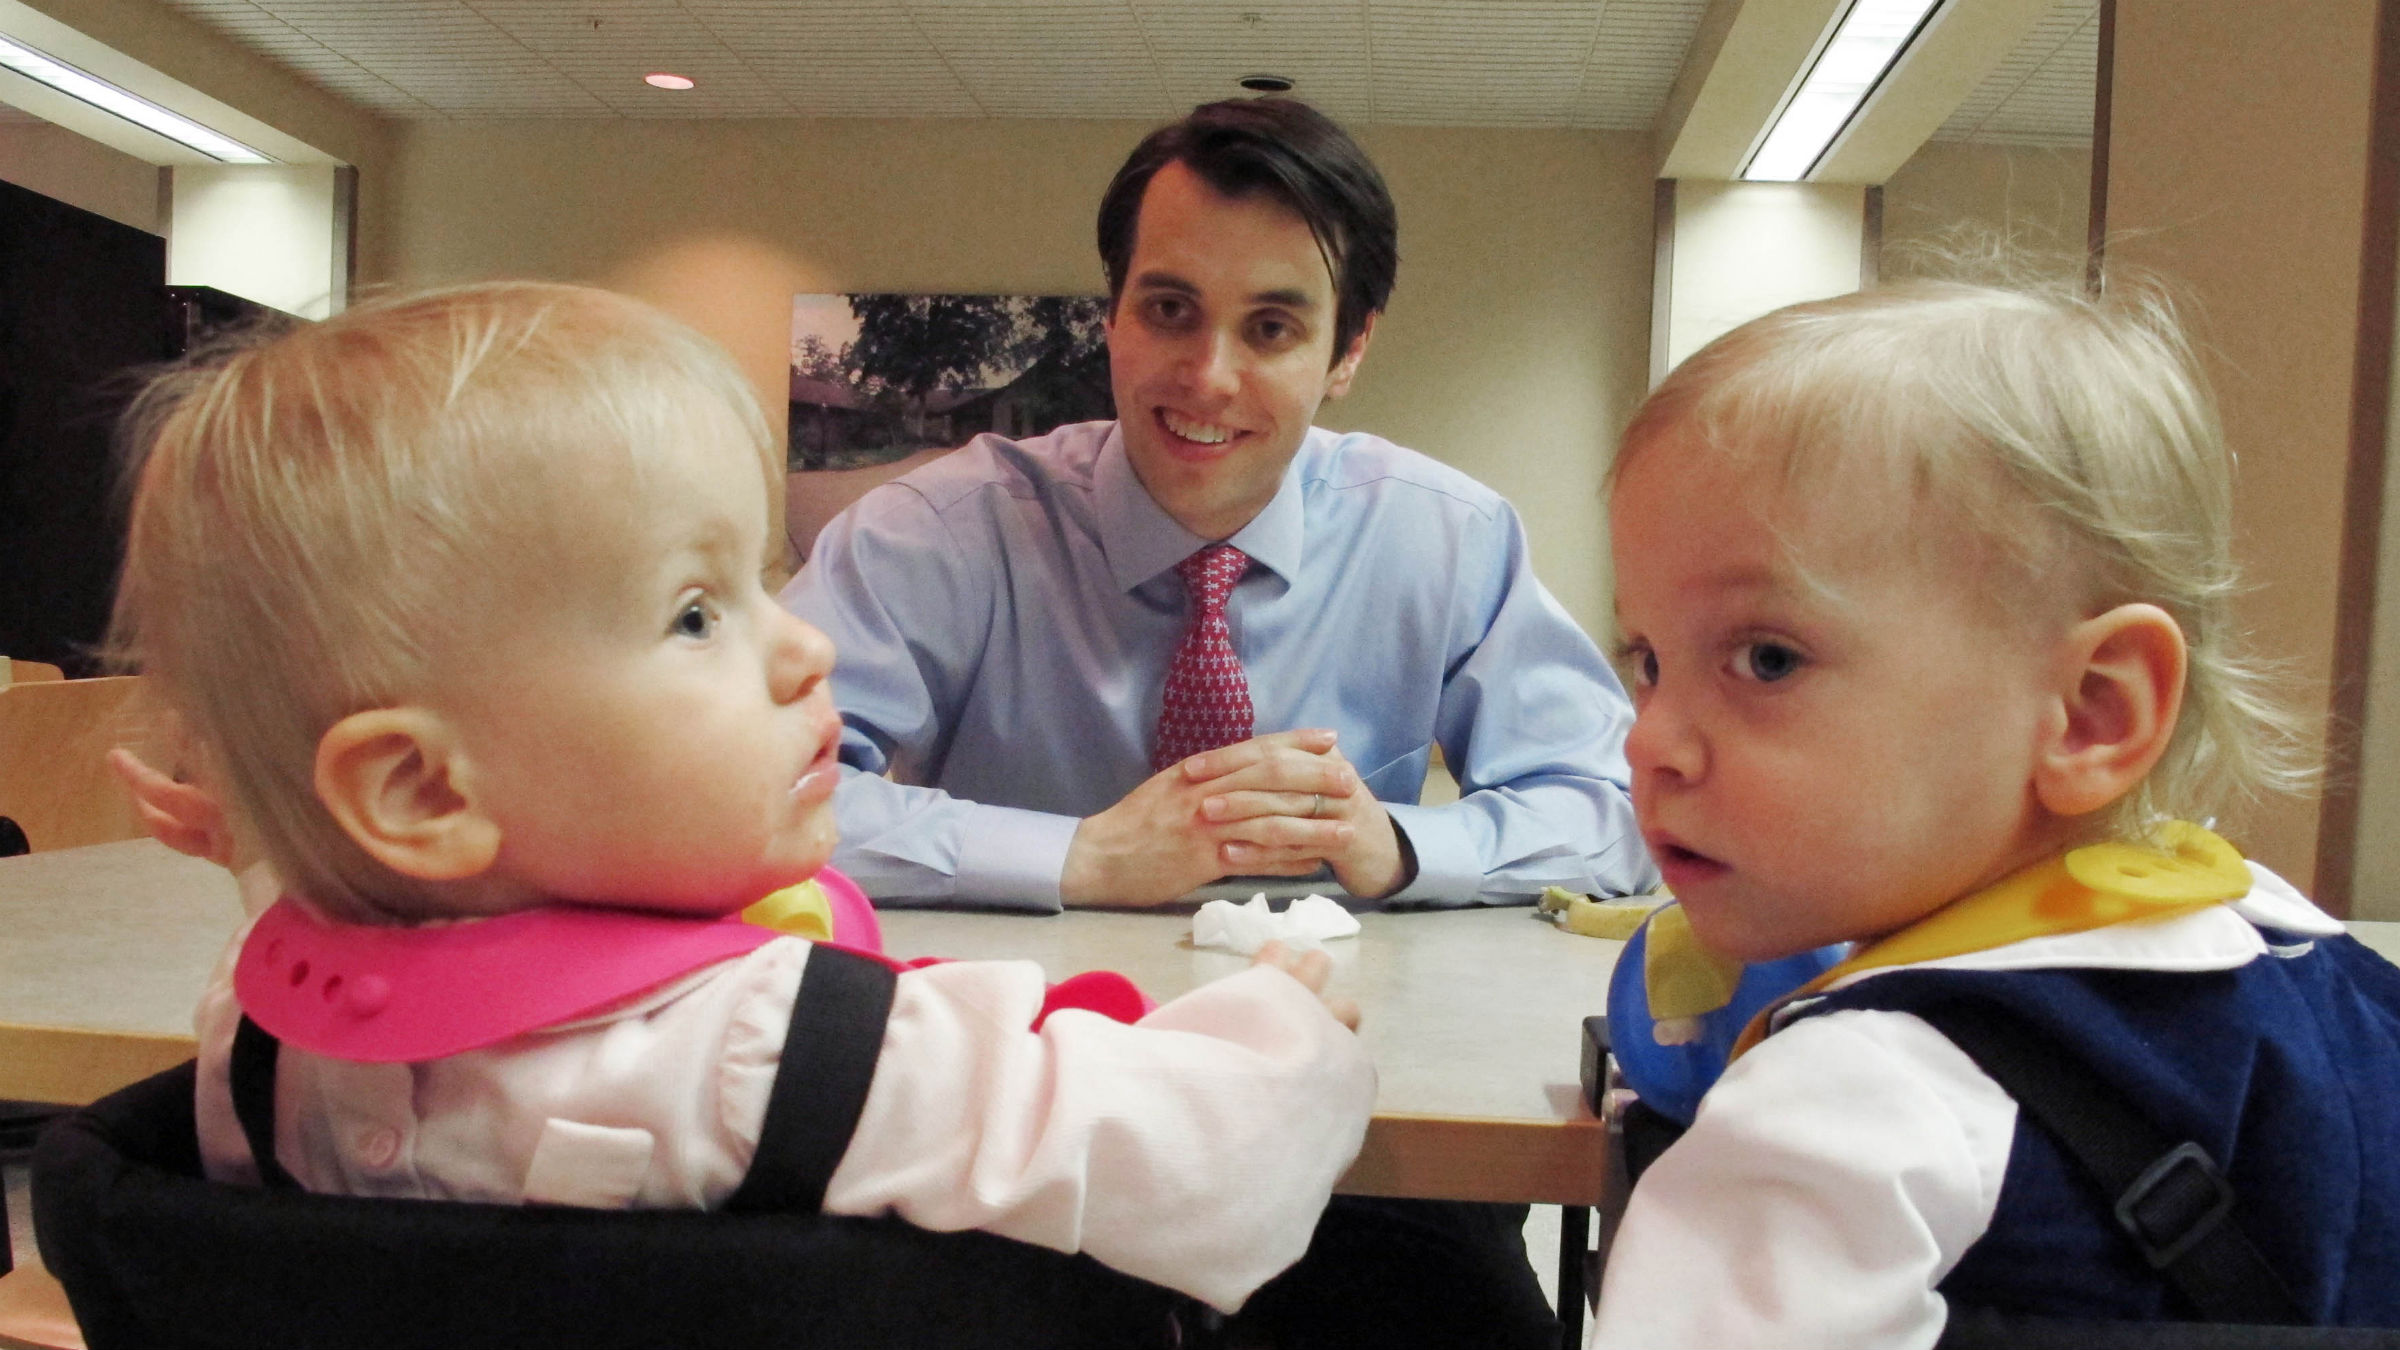 Sen. Morgan McGarvey, a Democrat from Louisville, prepares to have lunch with his twin toddlers, Clara, left, and Wilson McGarvey in the Capitol cafeteria at Frankfort, Ky., on Friday, Feb. 22, 2013. McGarvey, who was elected last year, and is halfway through is first legislative session.